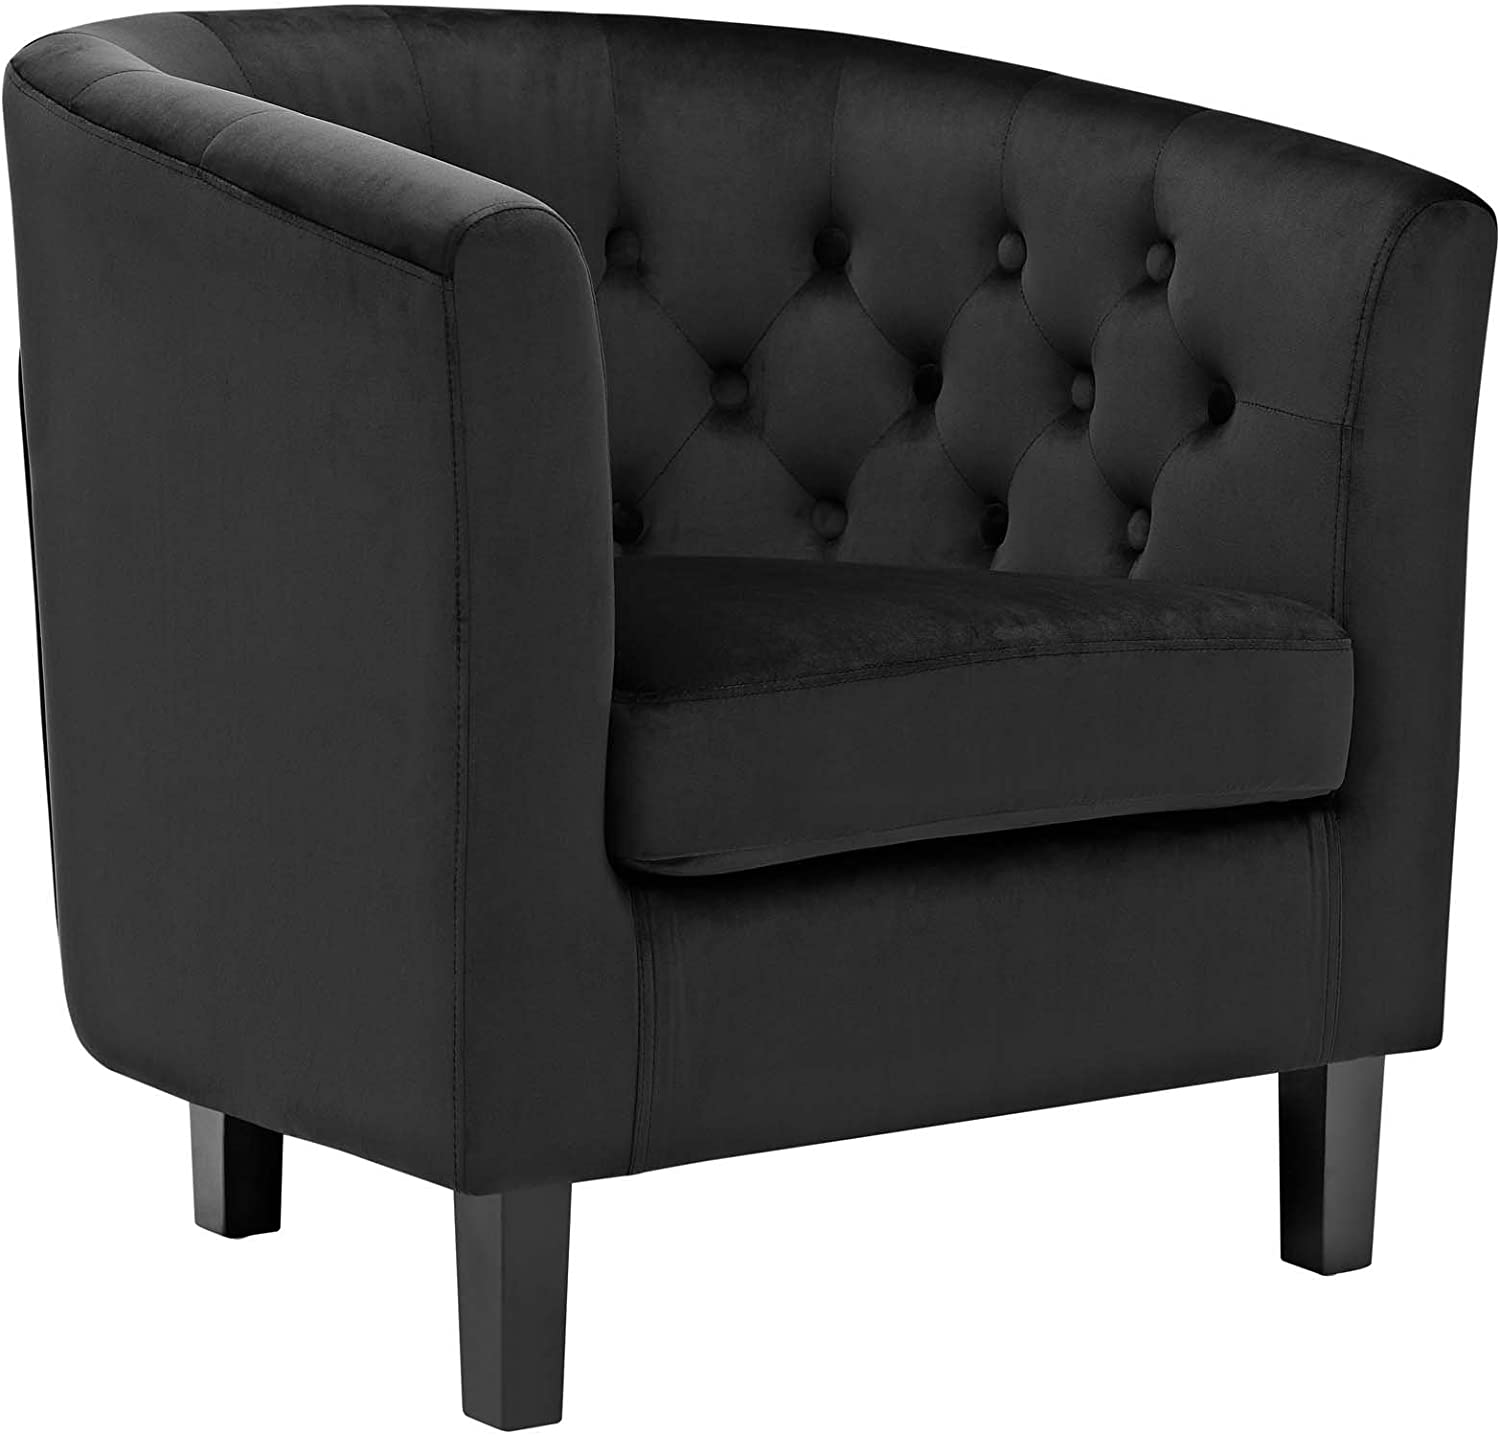 Modway Prospect Upholstered Velvet Contemporary Modern Accent Arm Chair in Black